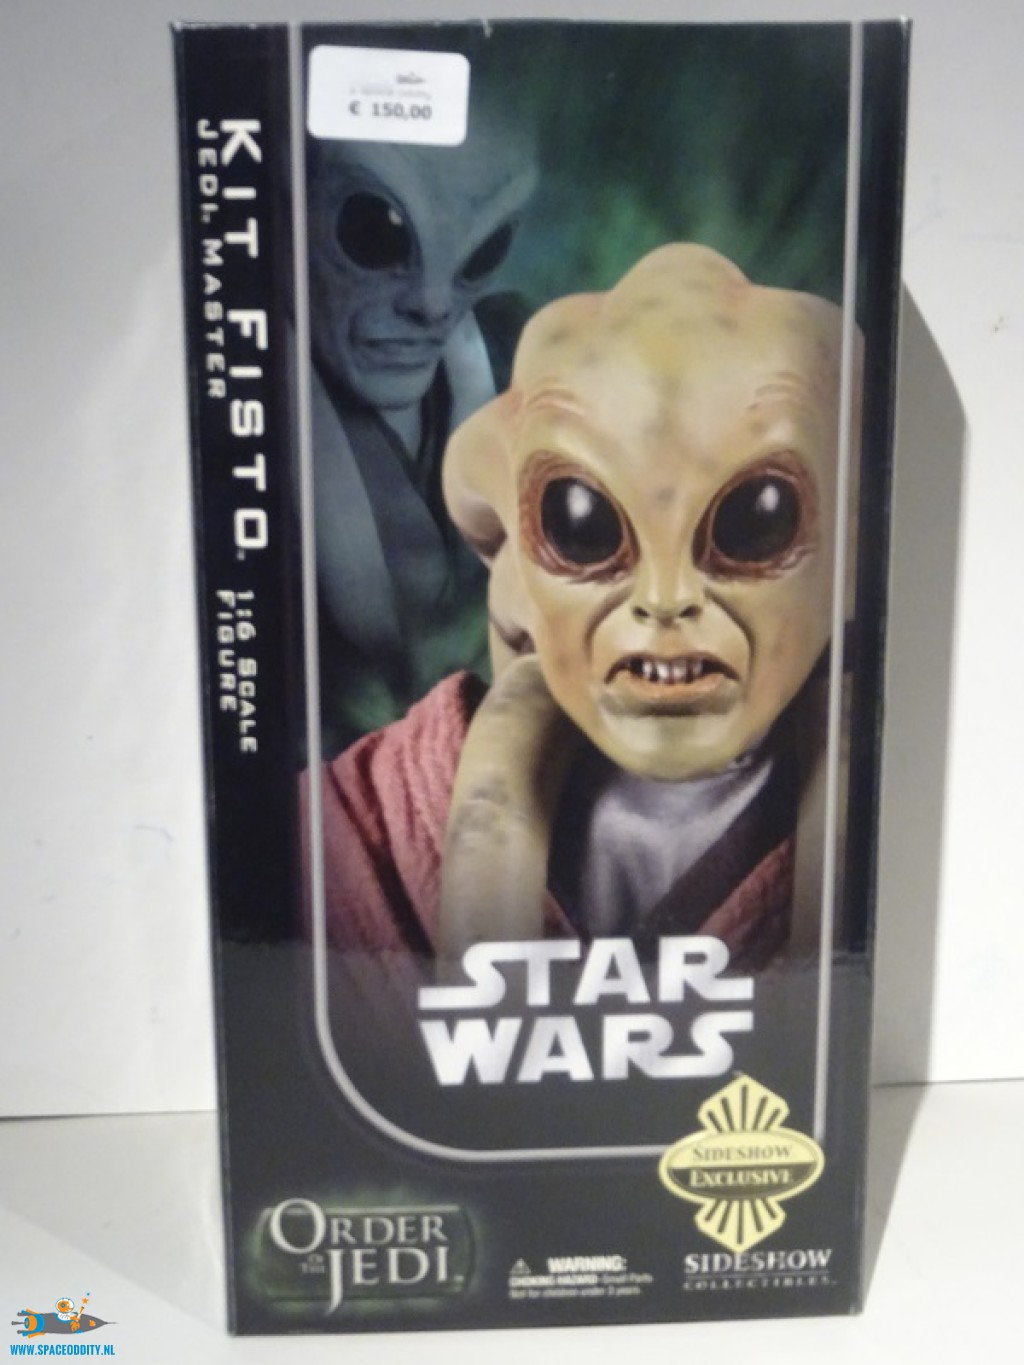 Star Wars Kit Fisto 1 6 Scale Action Figure Webshop A Space Oddity Tv Filmspeelgoed Amsterdam Action Figure Toy Store